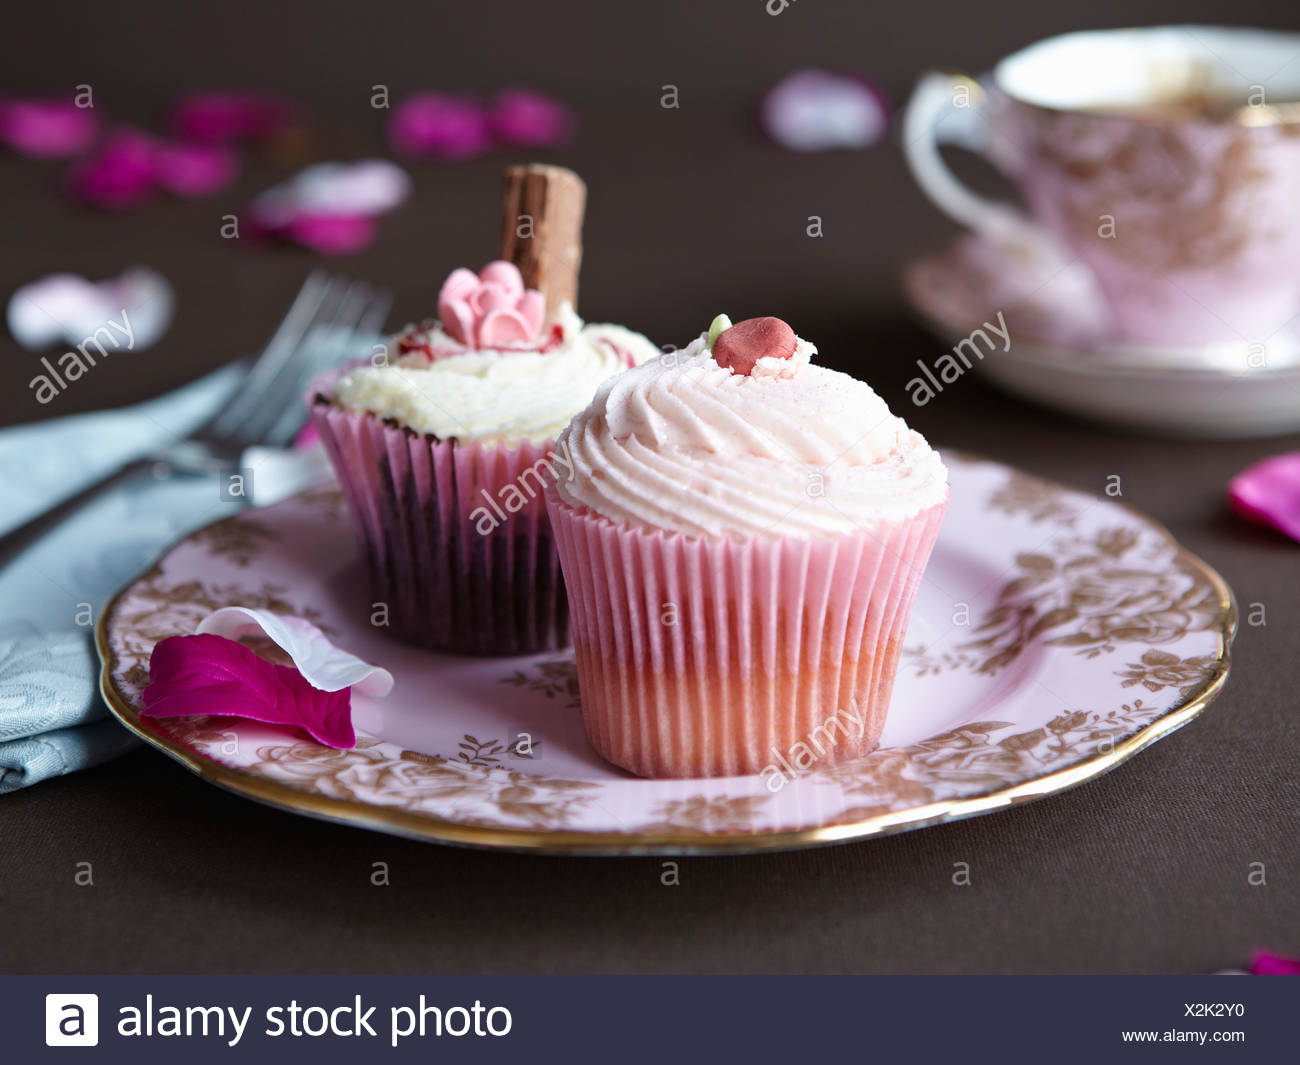 Plate of decorated cupcakes - Stock Image